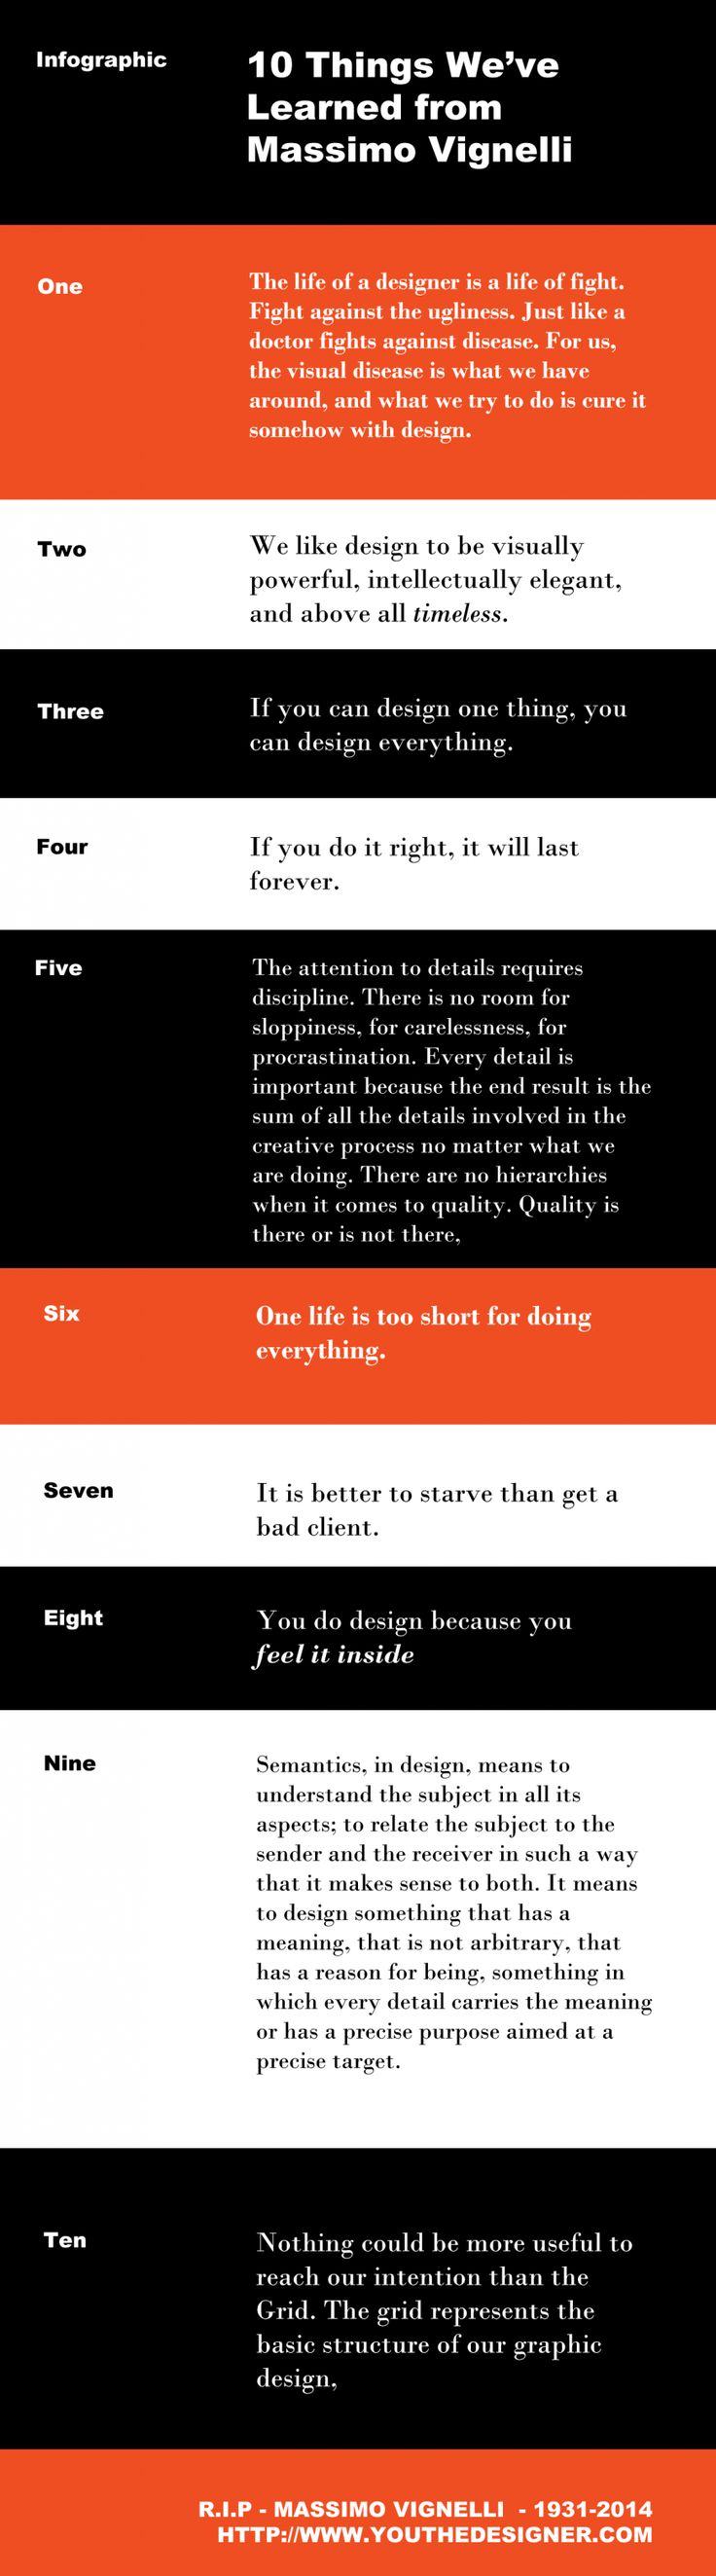 10 Things We've Learned From Designer Massimo Vignelli